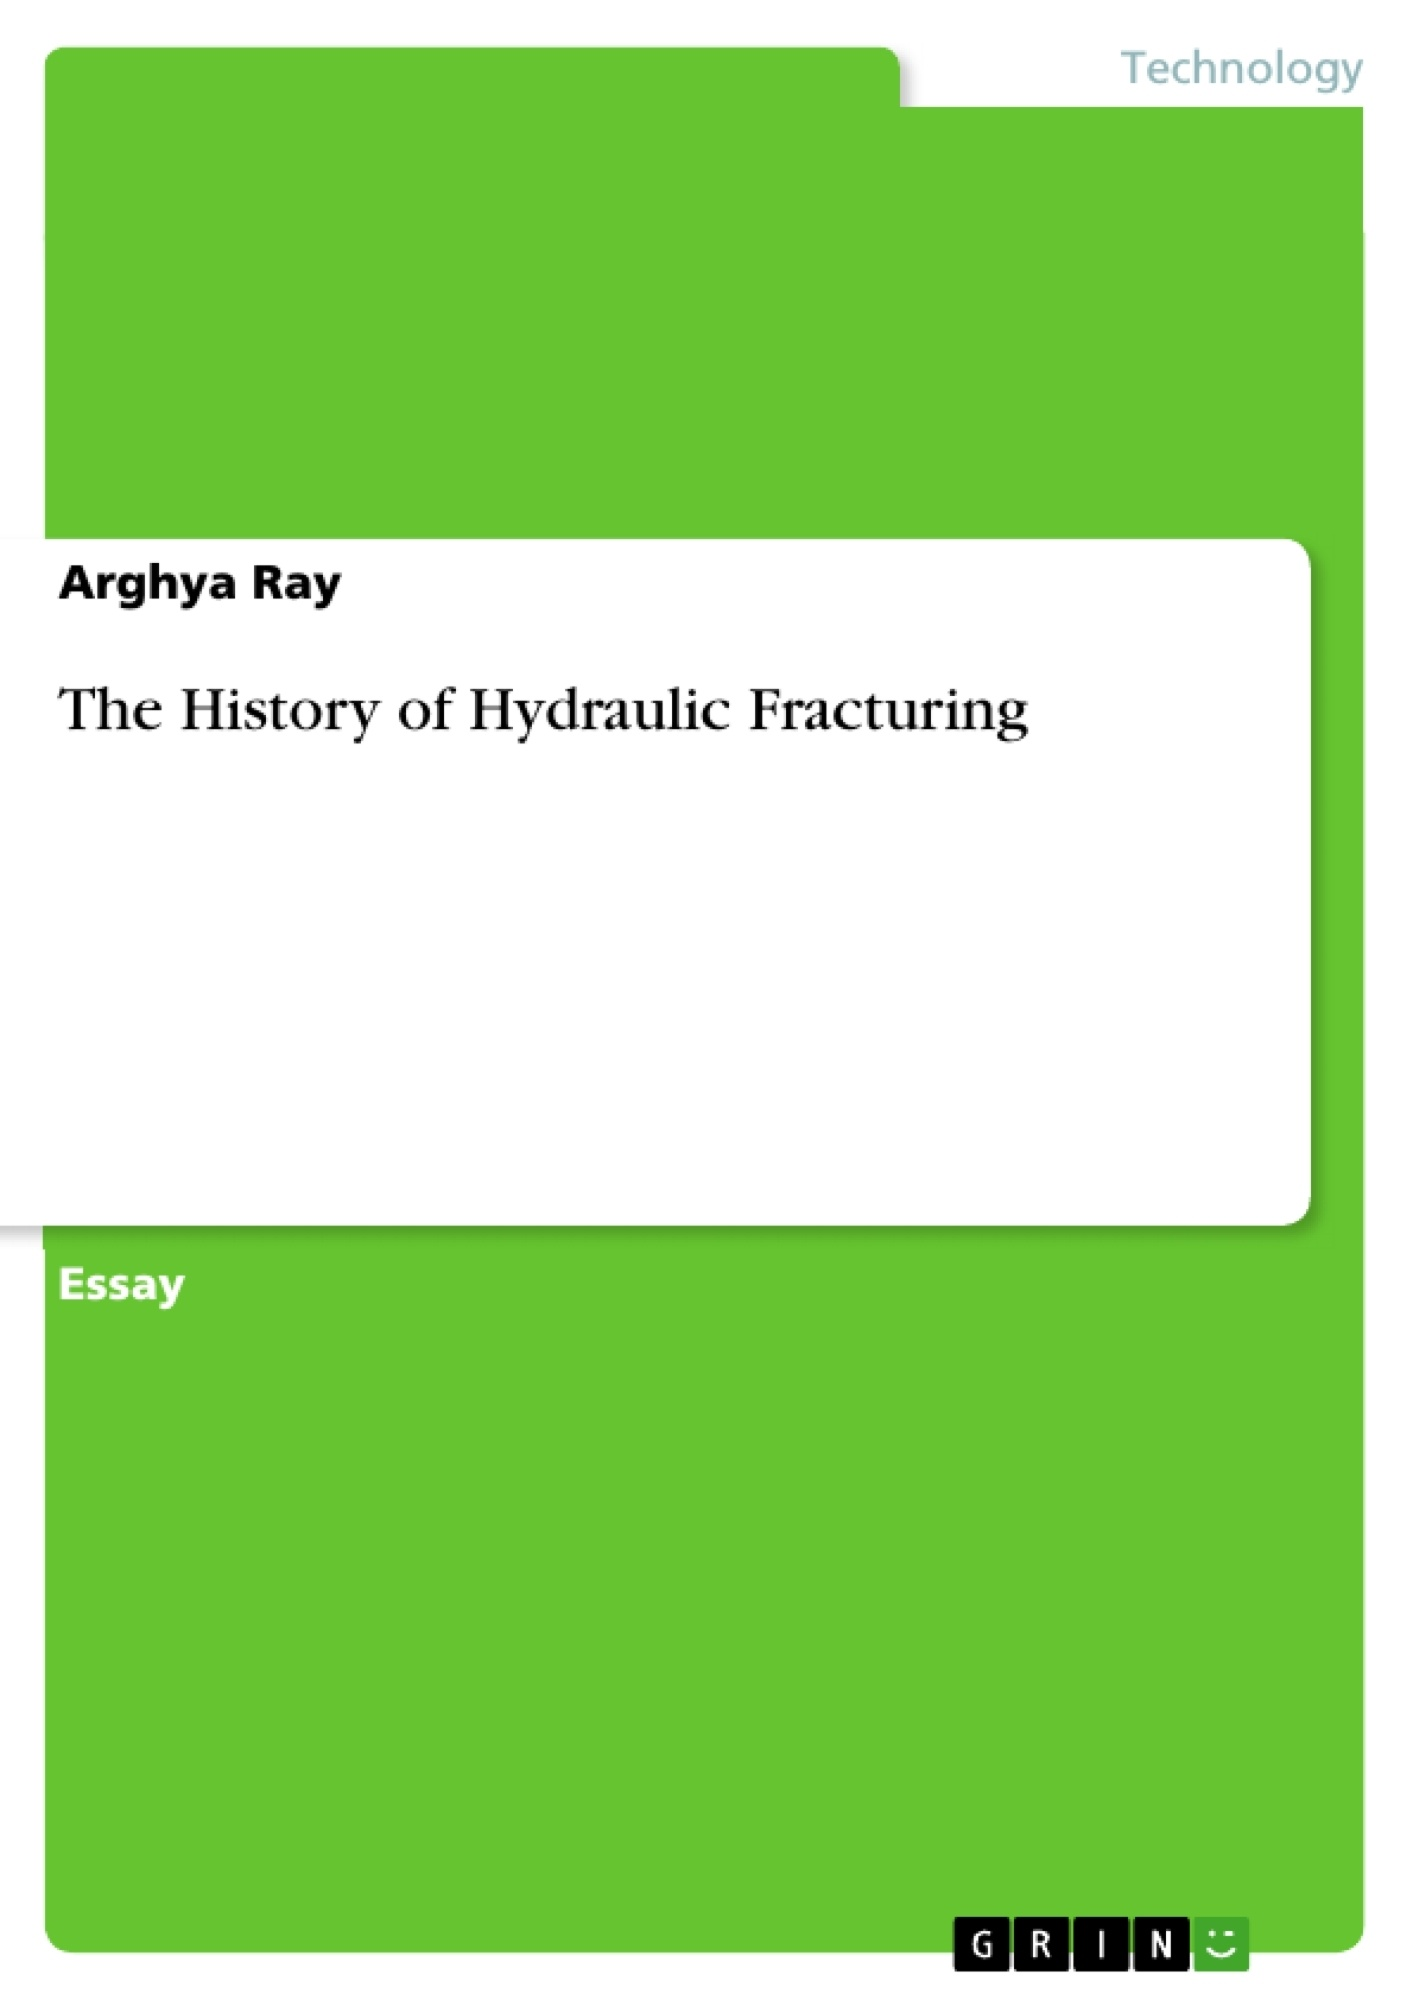 Title: The History of Hydraulic Fracturing